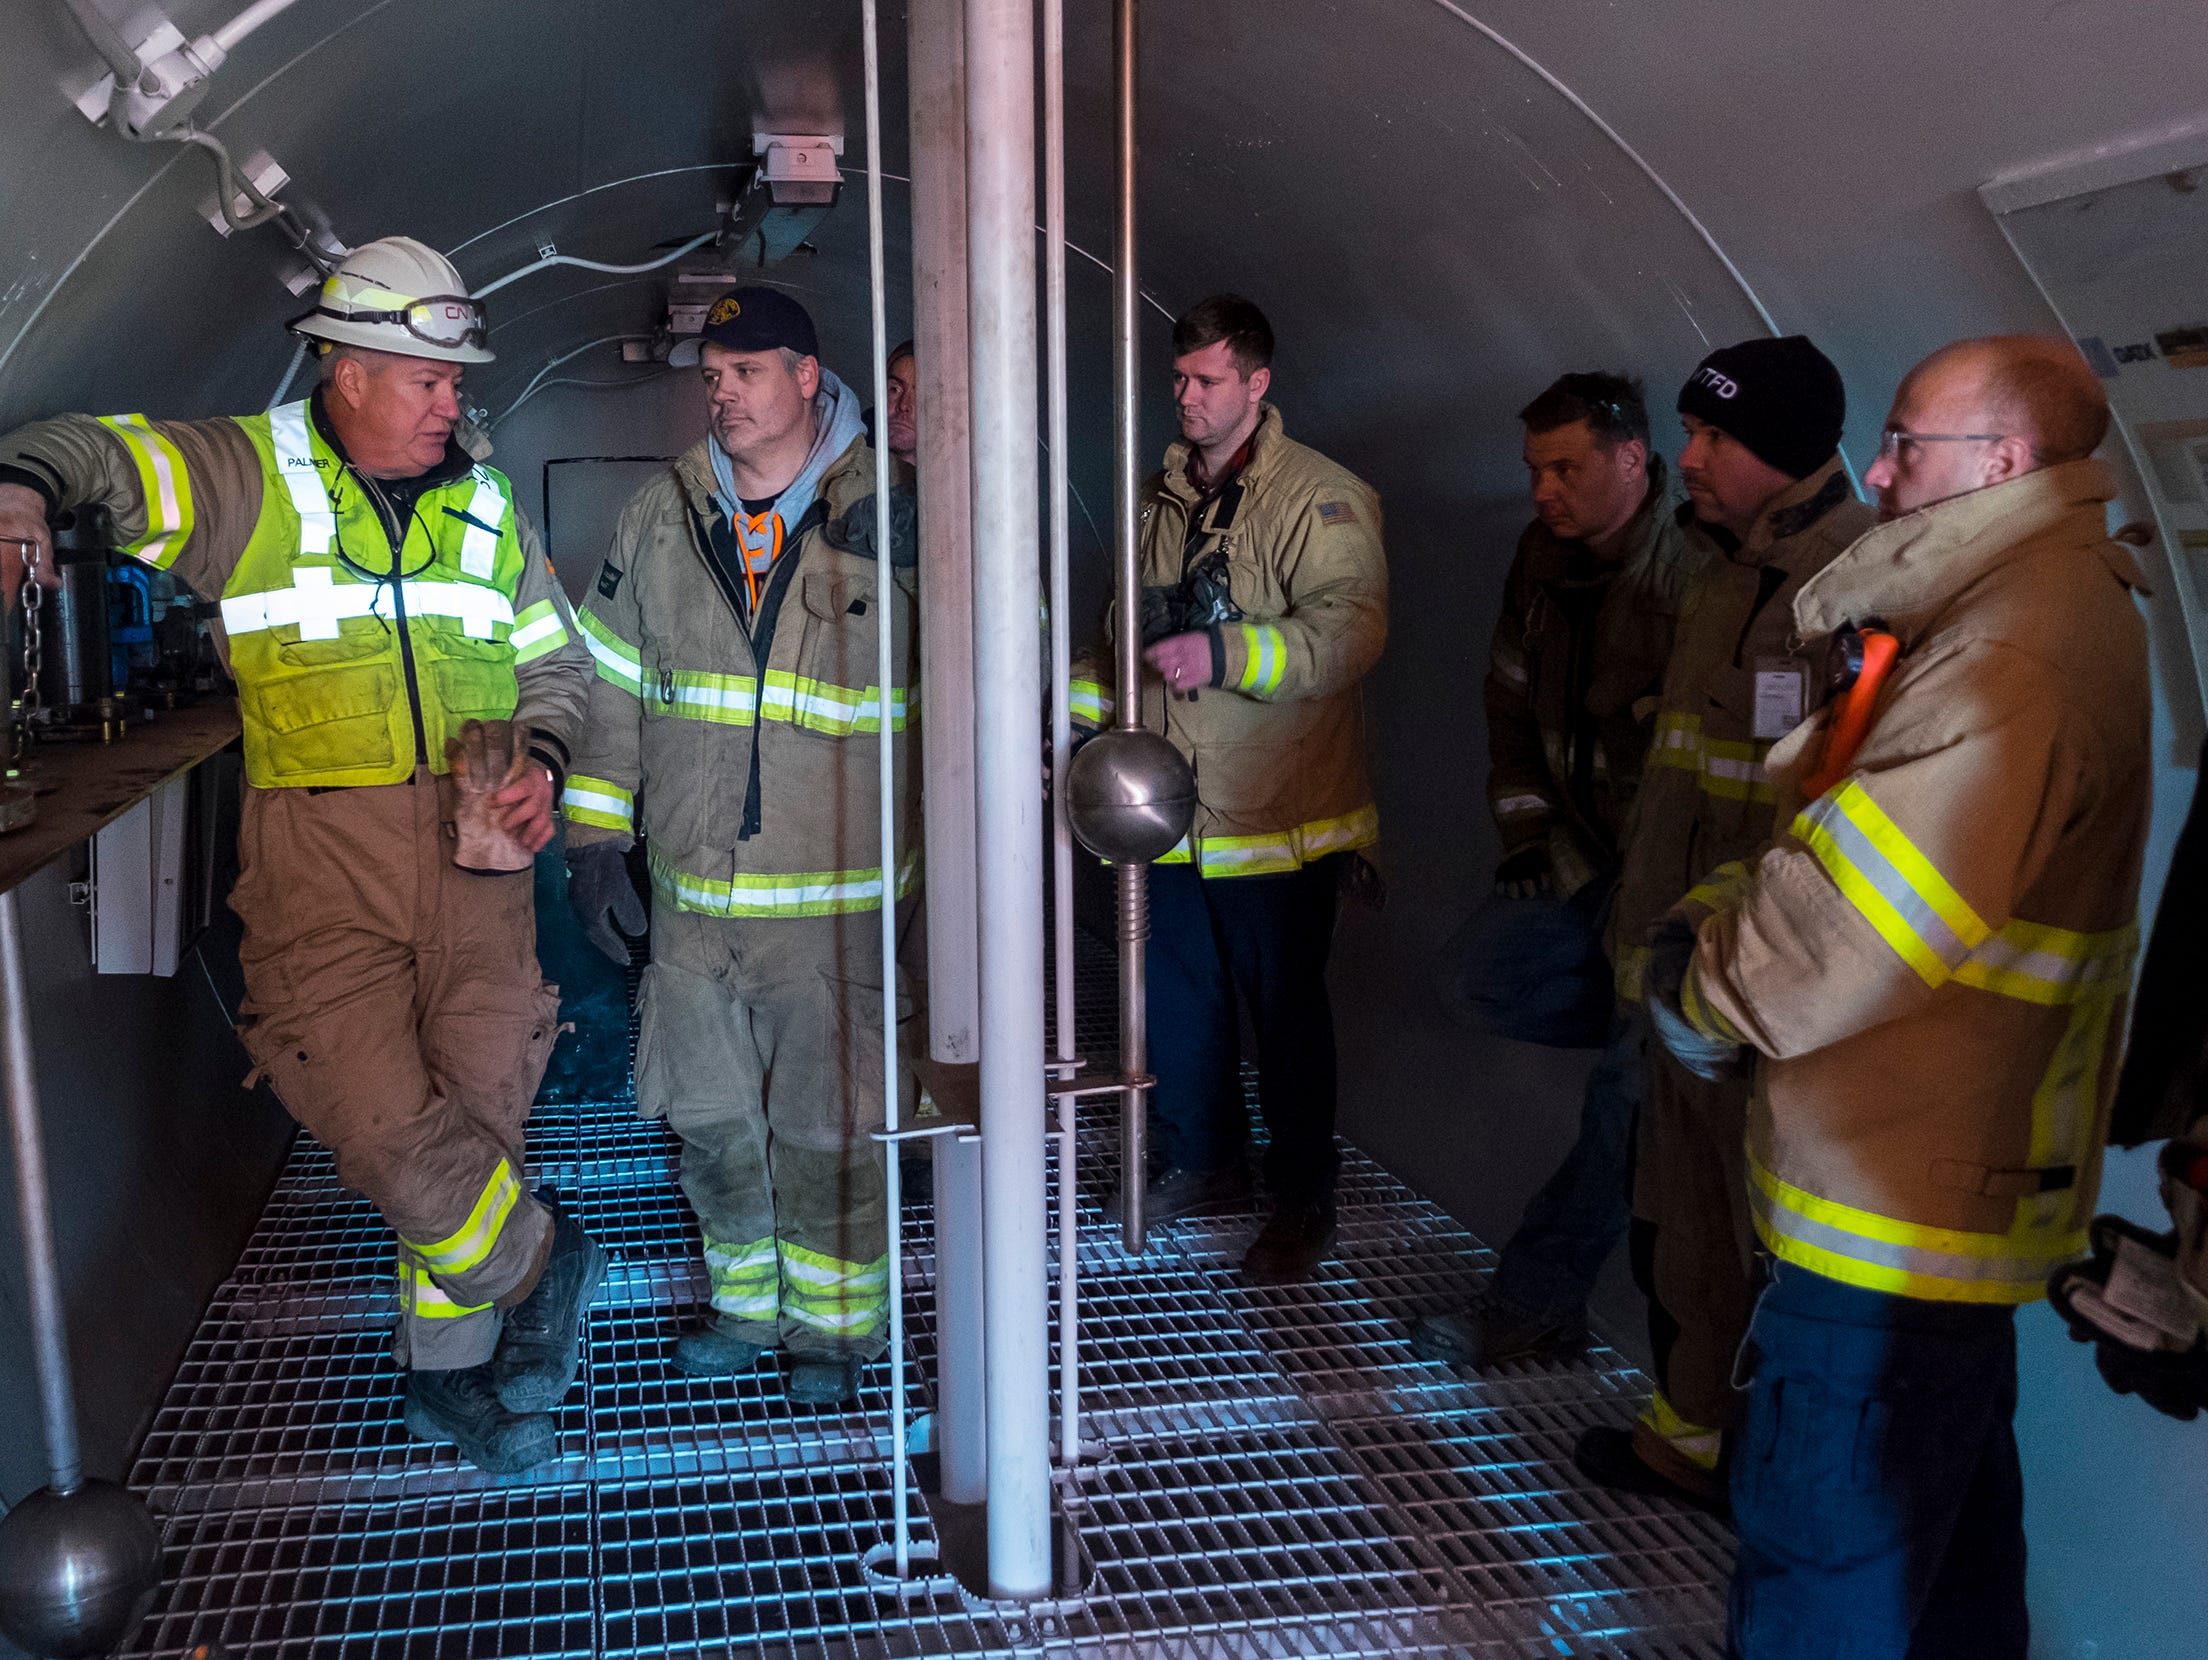 Greg Palmer, CN Rail dangerous goods officer, left, talks to a group of firefighters about different pressure release valves inside a CN Rail tank car during a hazardous materials training class Wednesday, Nov. 14, 2018 at the CN Rail yard in Port Huron.